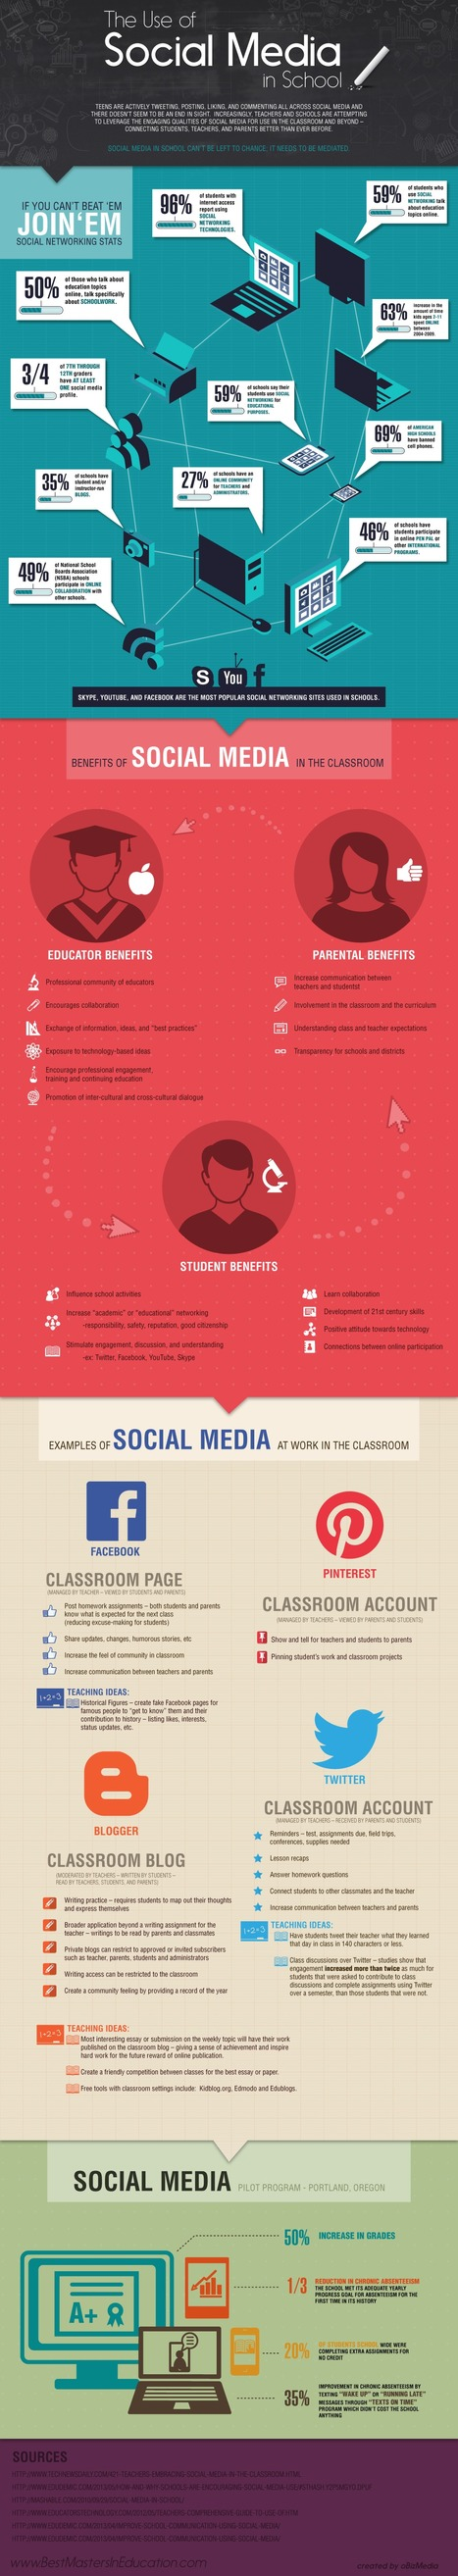 Social Media 101: Is There a Place For Social Media in Classrooms? [Infographic] | Better teaching, more learning | Scoop.it